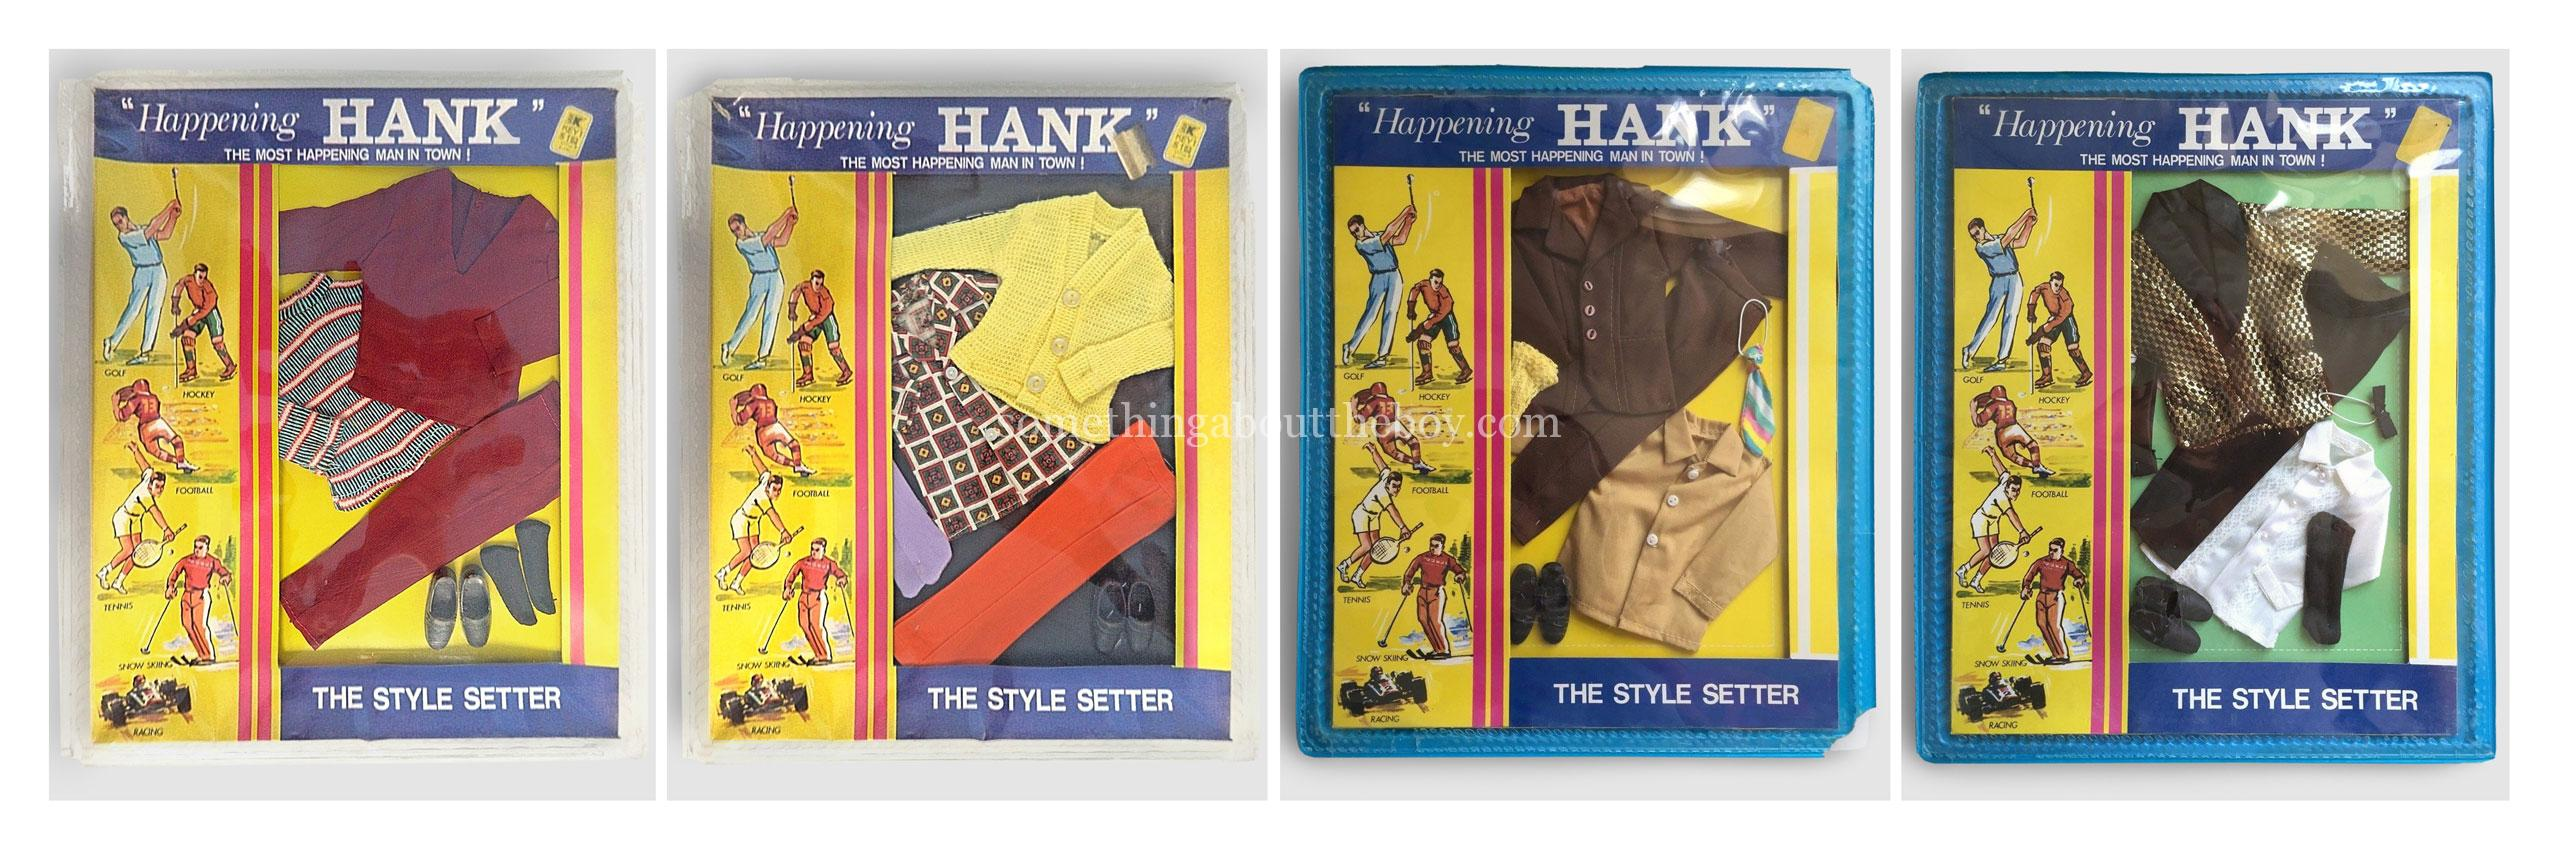 """""""Happening Hank"""" outfits by Peggy Ann Dolls"""